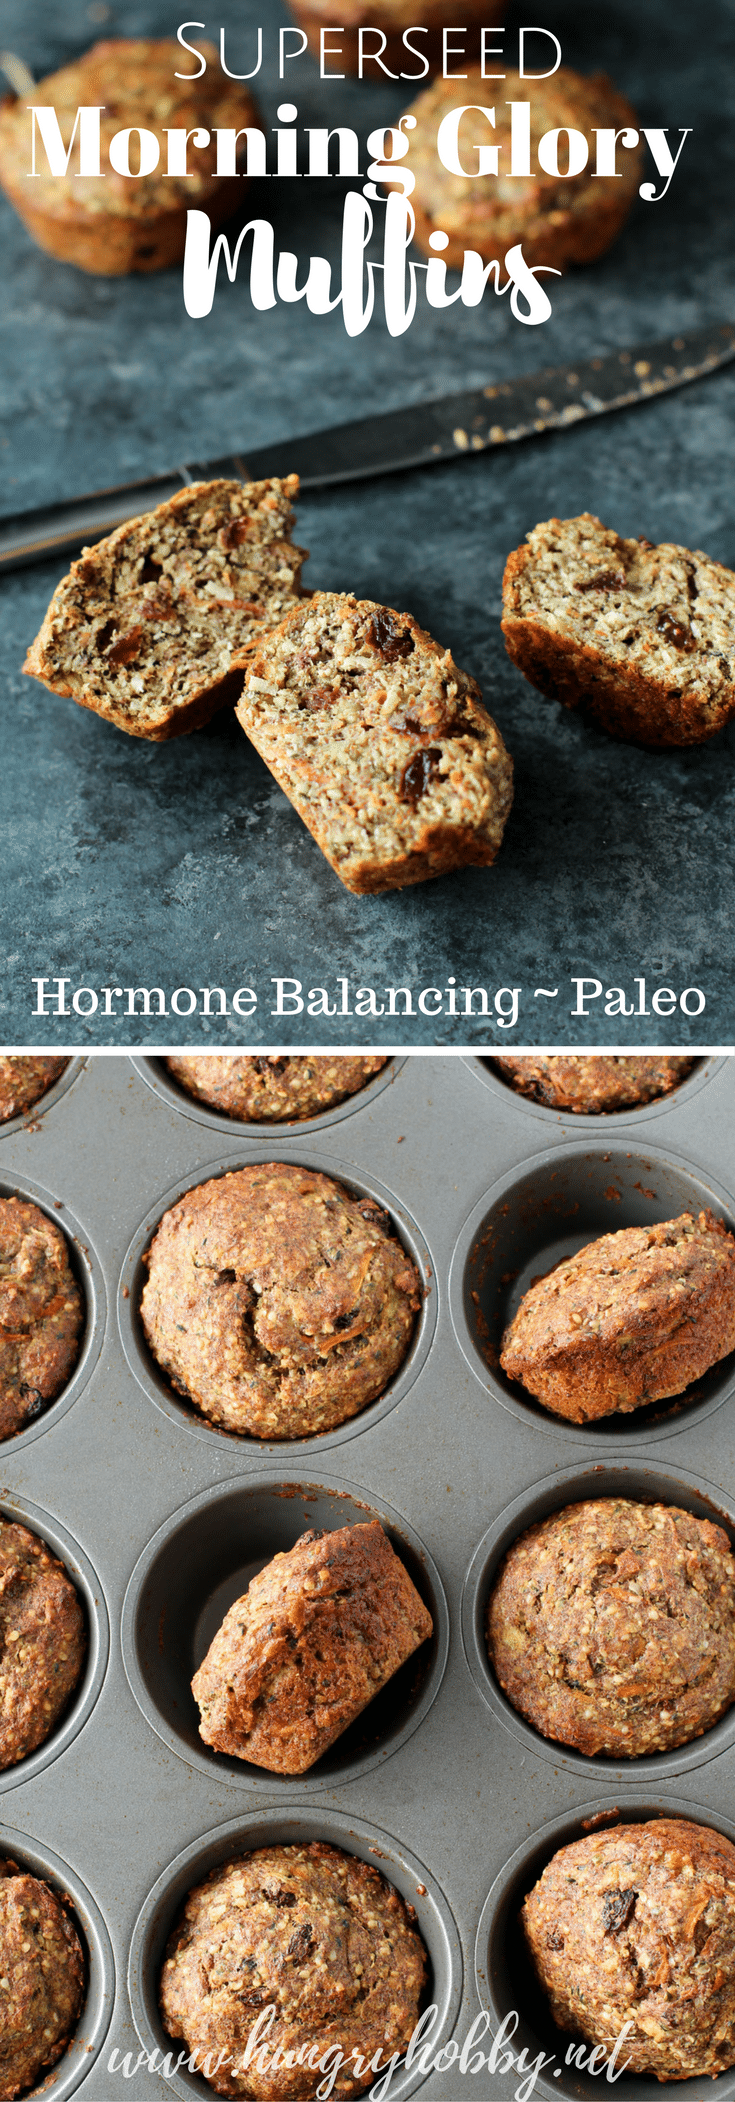 Super-seed Morning Glory Muffins are slightly sweet, moist, very nutty and filling! They also promote hormone balance for ladies when used for seed cycling! #glutenfree #paleo #breakfast #seedcycling #hormonebalance #grainfree